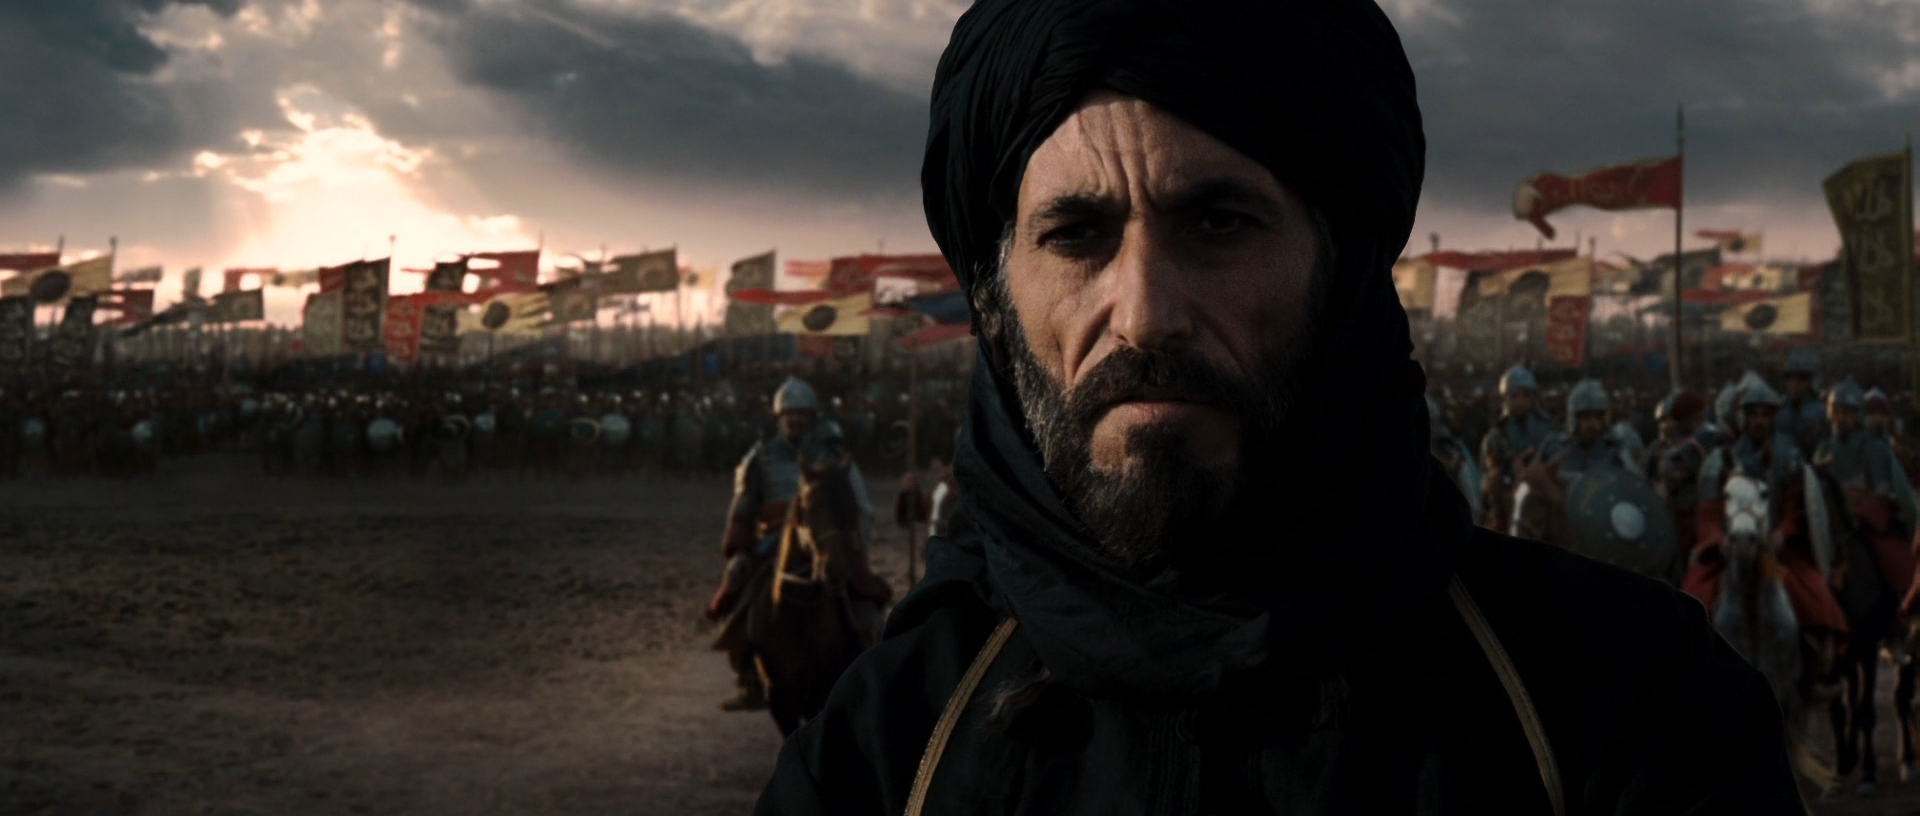 Kingdom Of Heaven Saladin Images & Pictures - Becuo